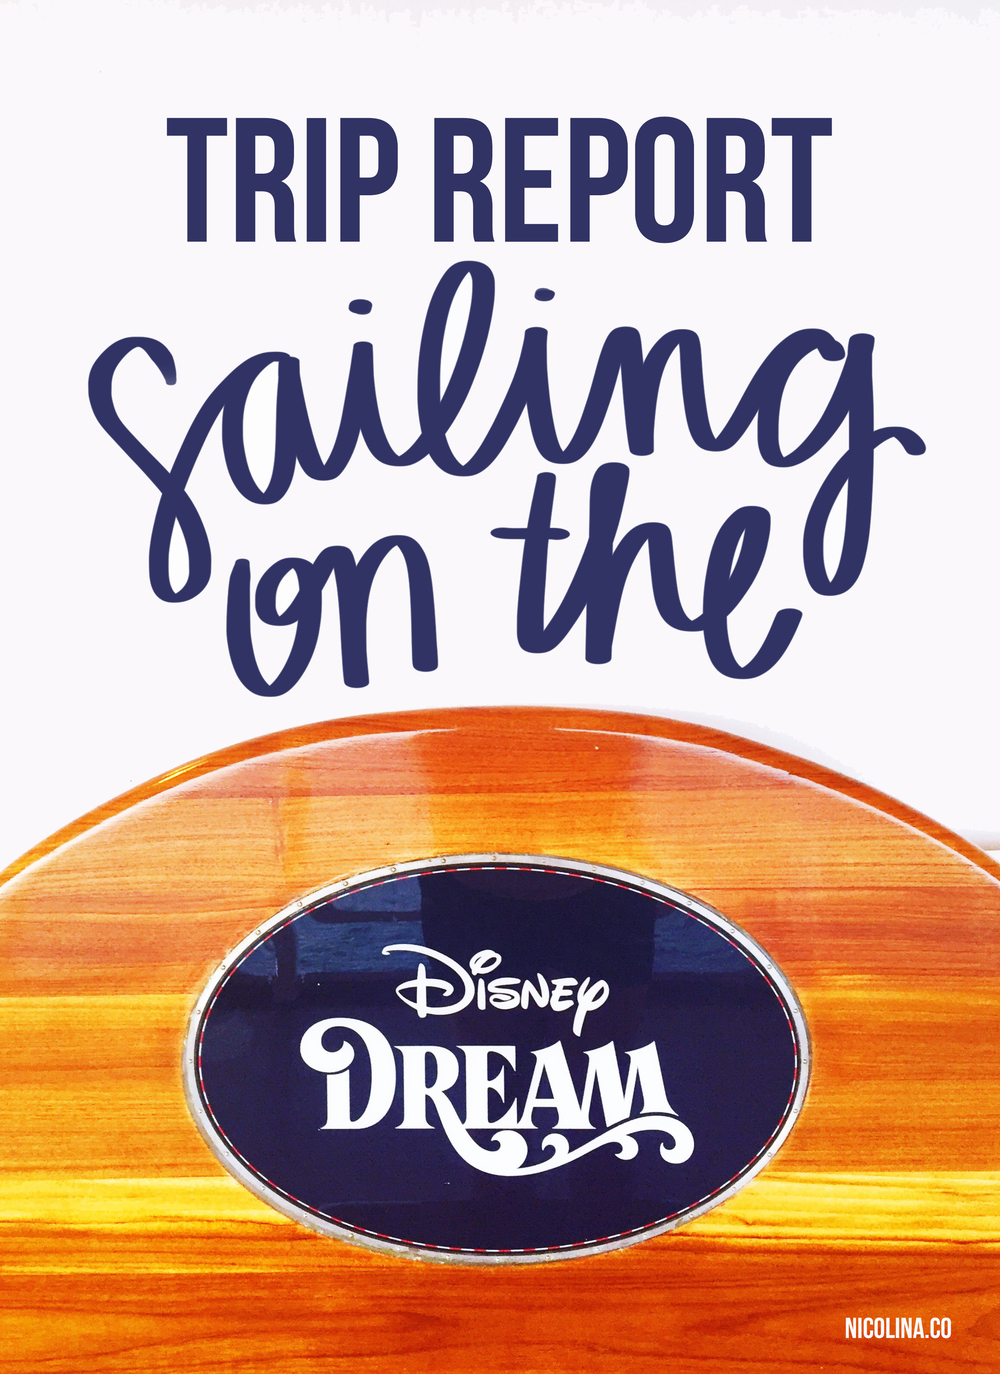 Trip Report - Sailing on the Disney Dream